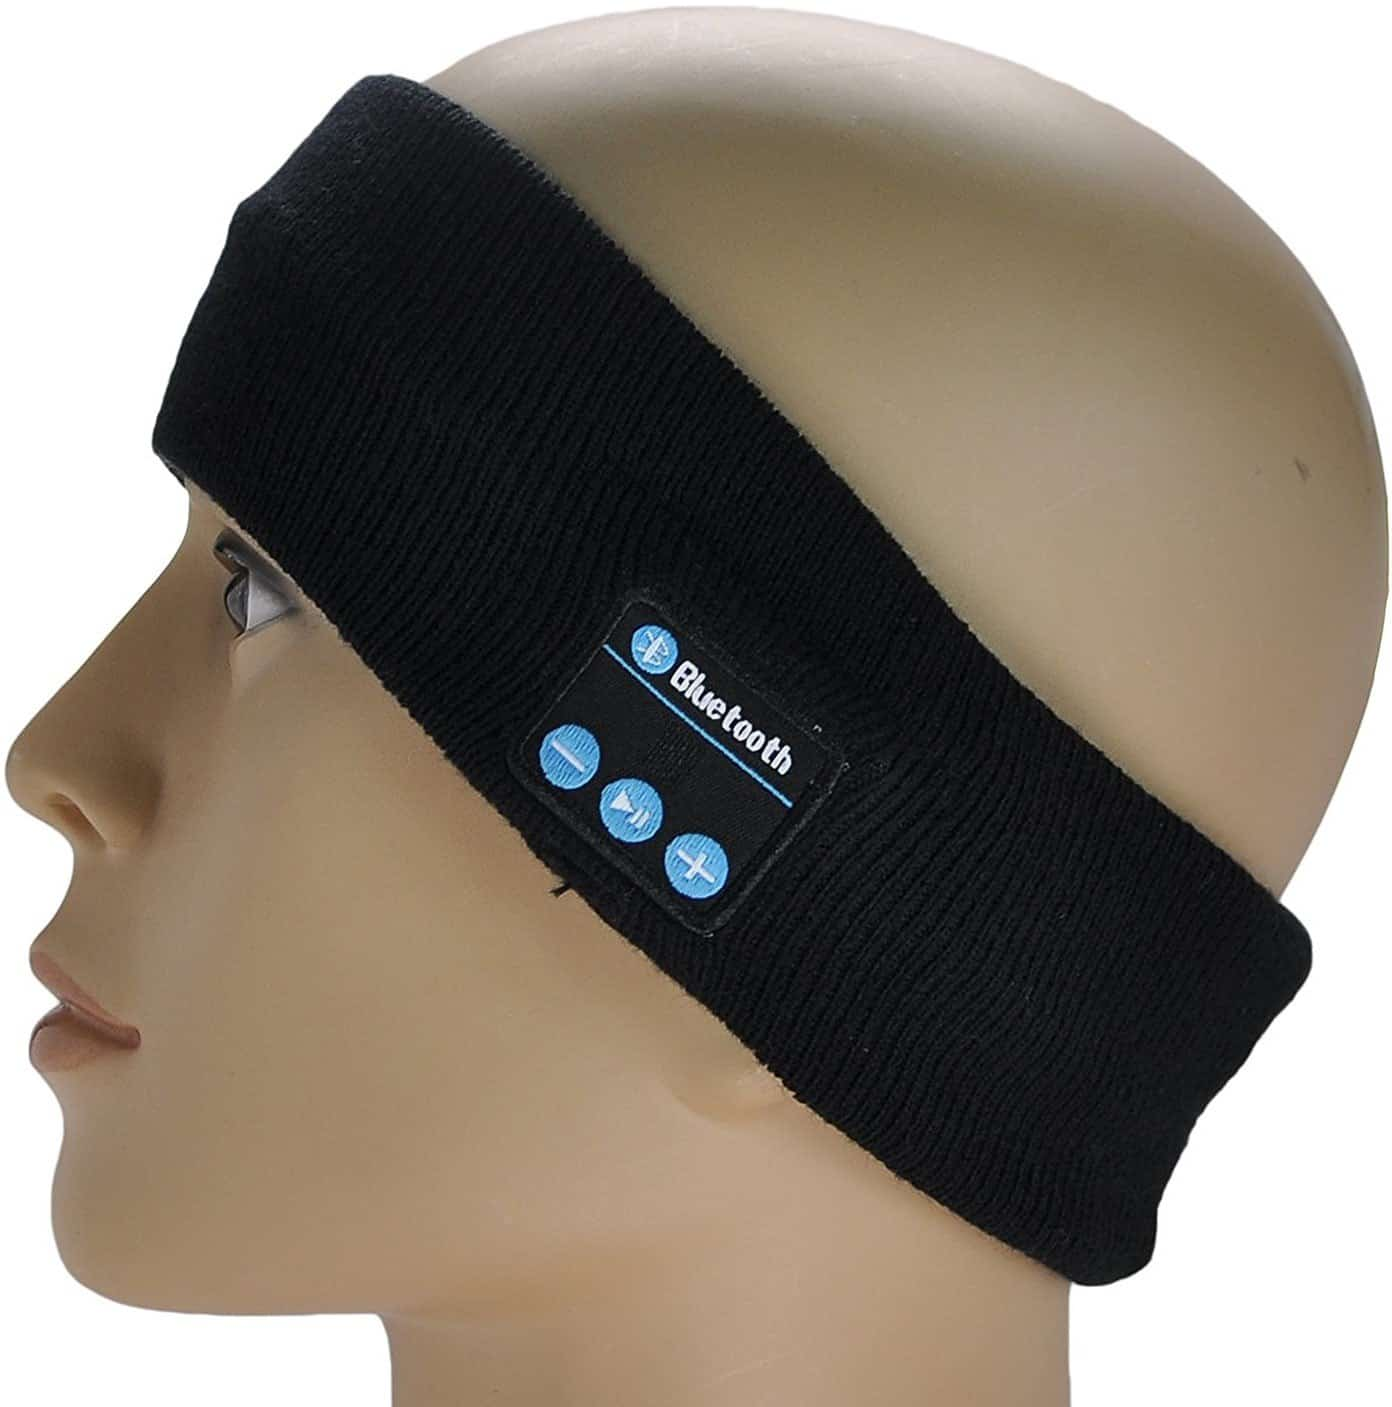 Find great deals on eBay for Sleepphones in Portable Headphones. Shop with confidence.